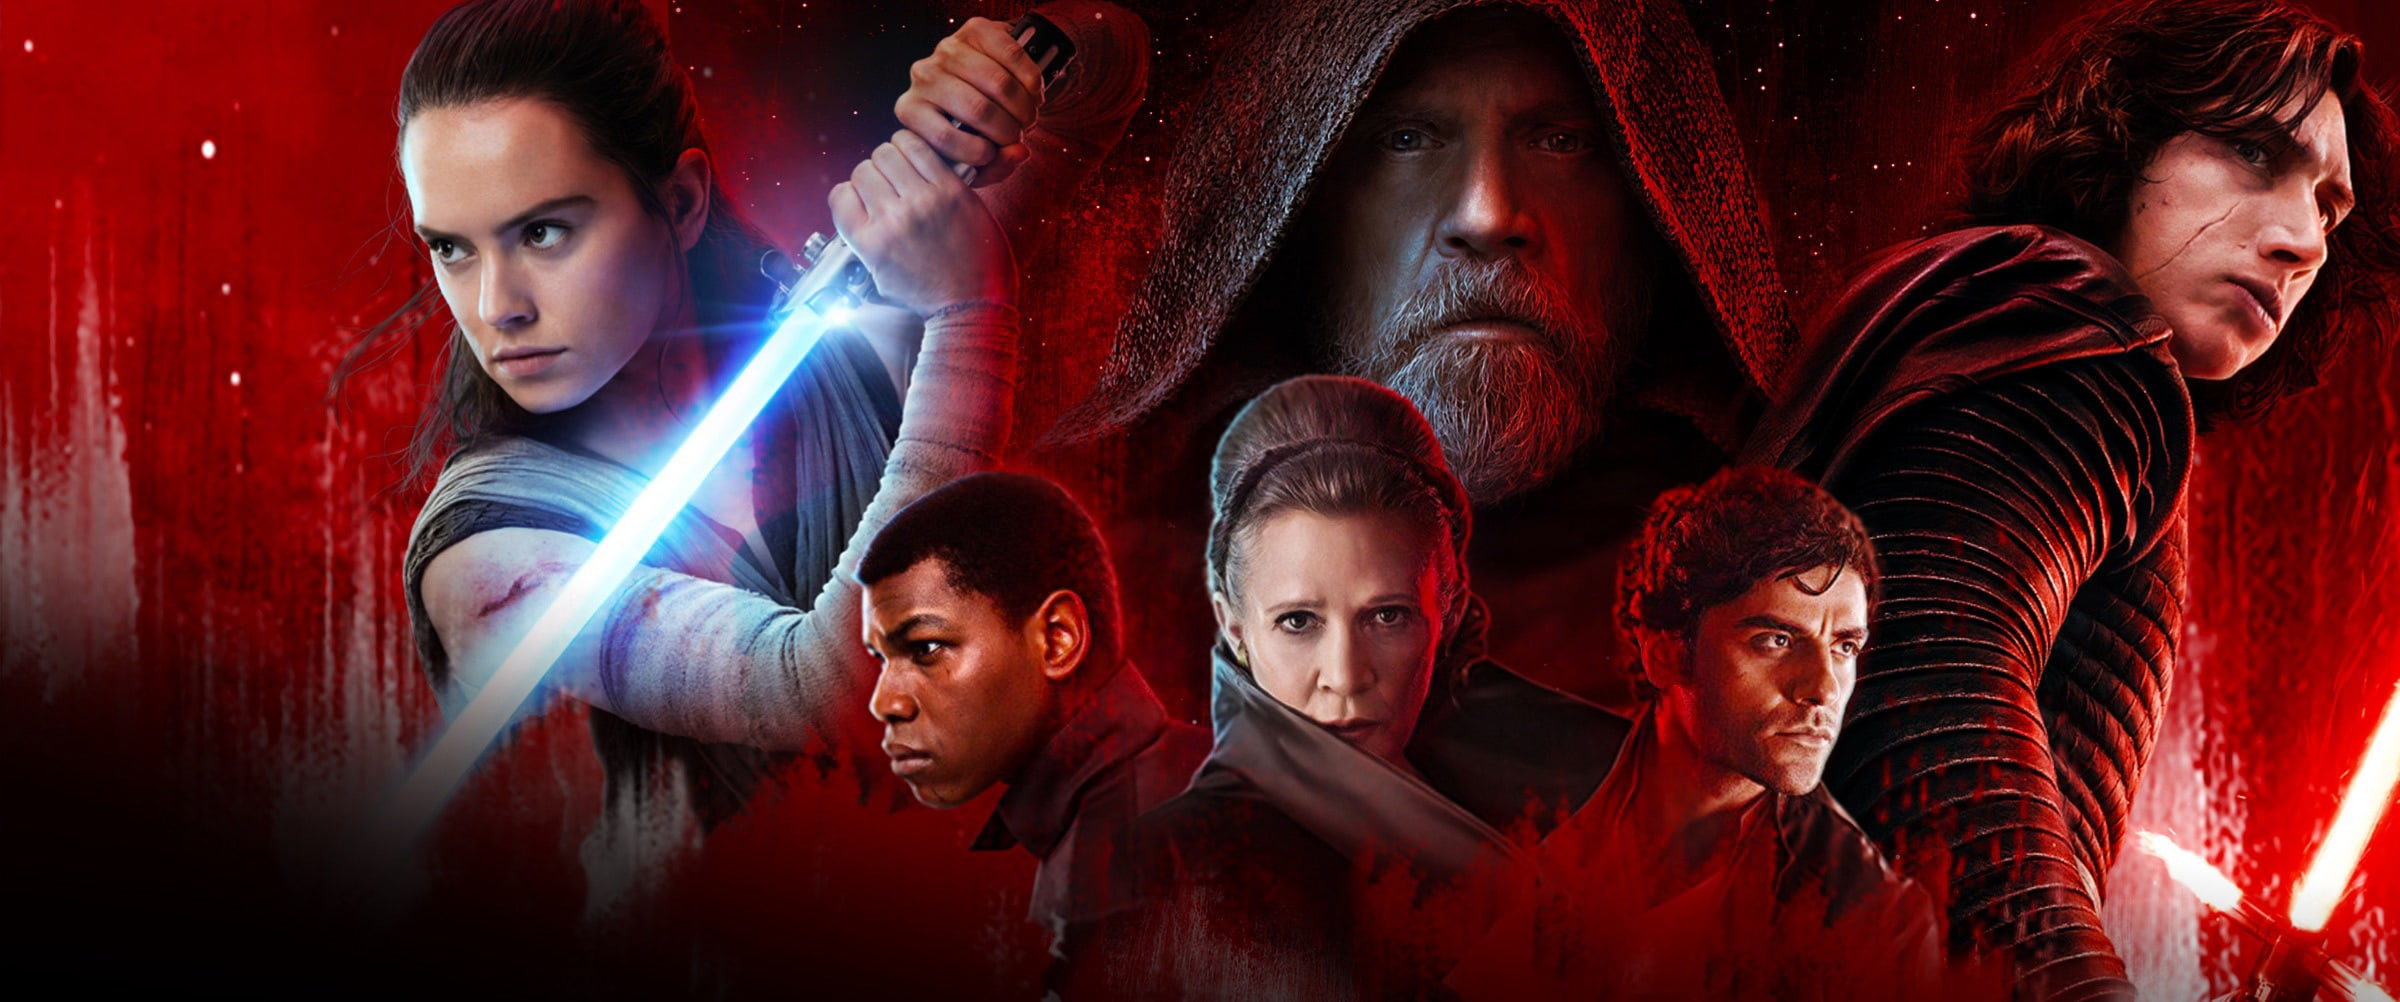 PT - Star Wars The Last Jedi - Flex-Content Hero Object - Video